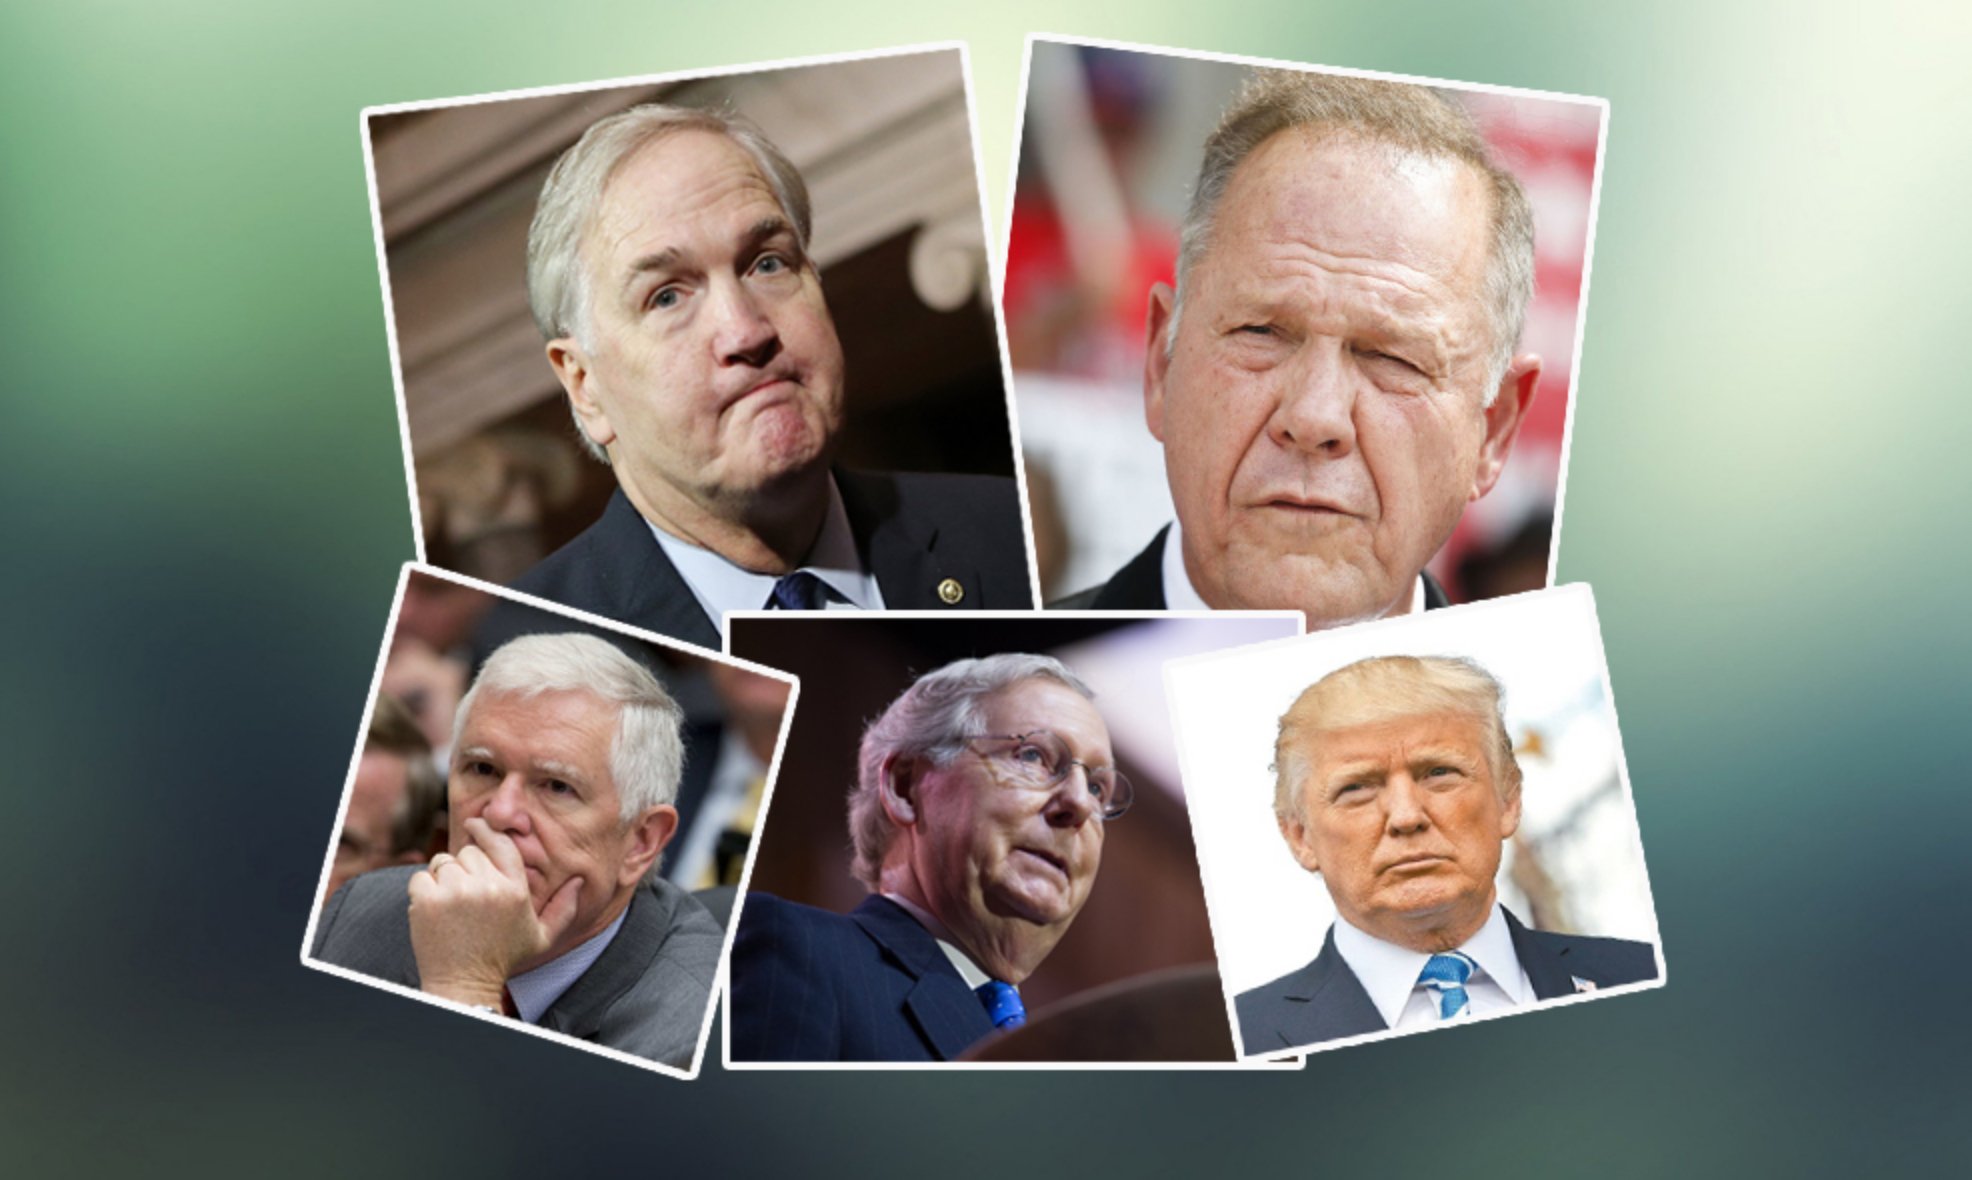 Special Election Tuesday: Will Alabama Voters Choose the Status Quo, or Ditch Mitch?